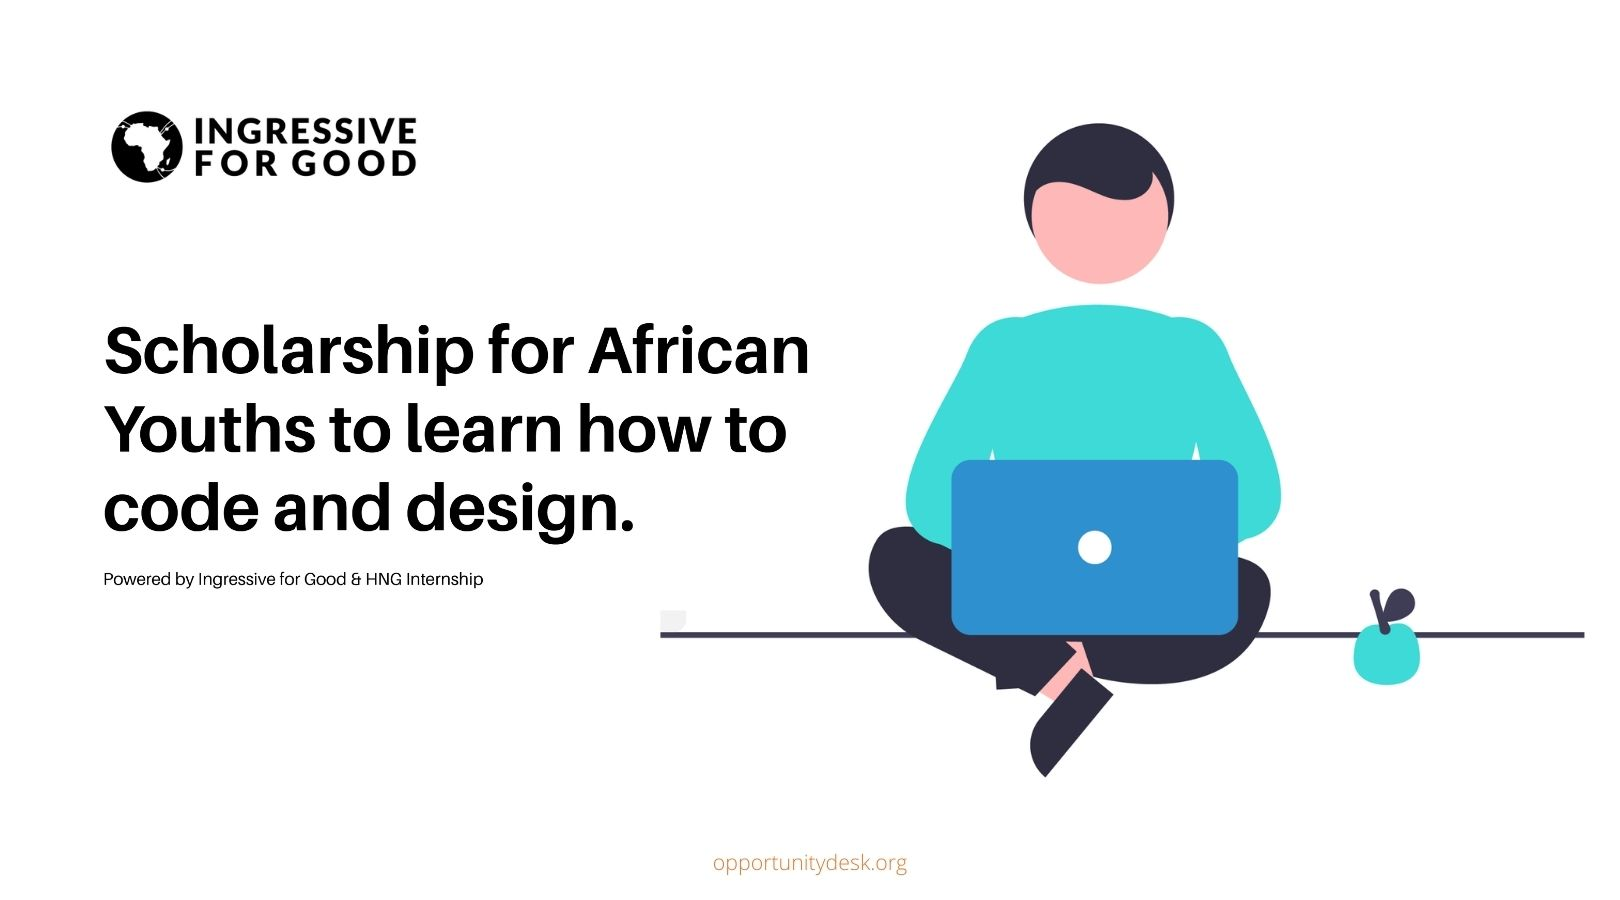 Ingressive For Good Scholarship 2021 for African Youths to Learn to Code & Design (fully funded)